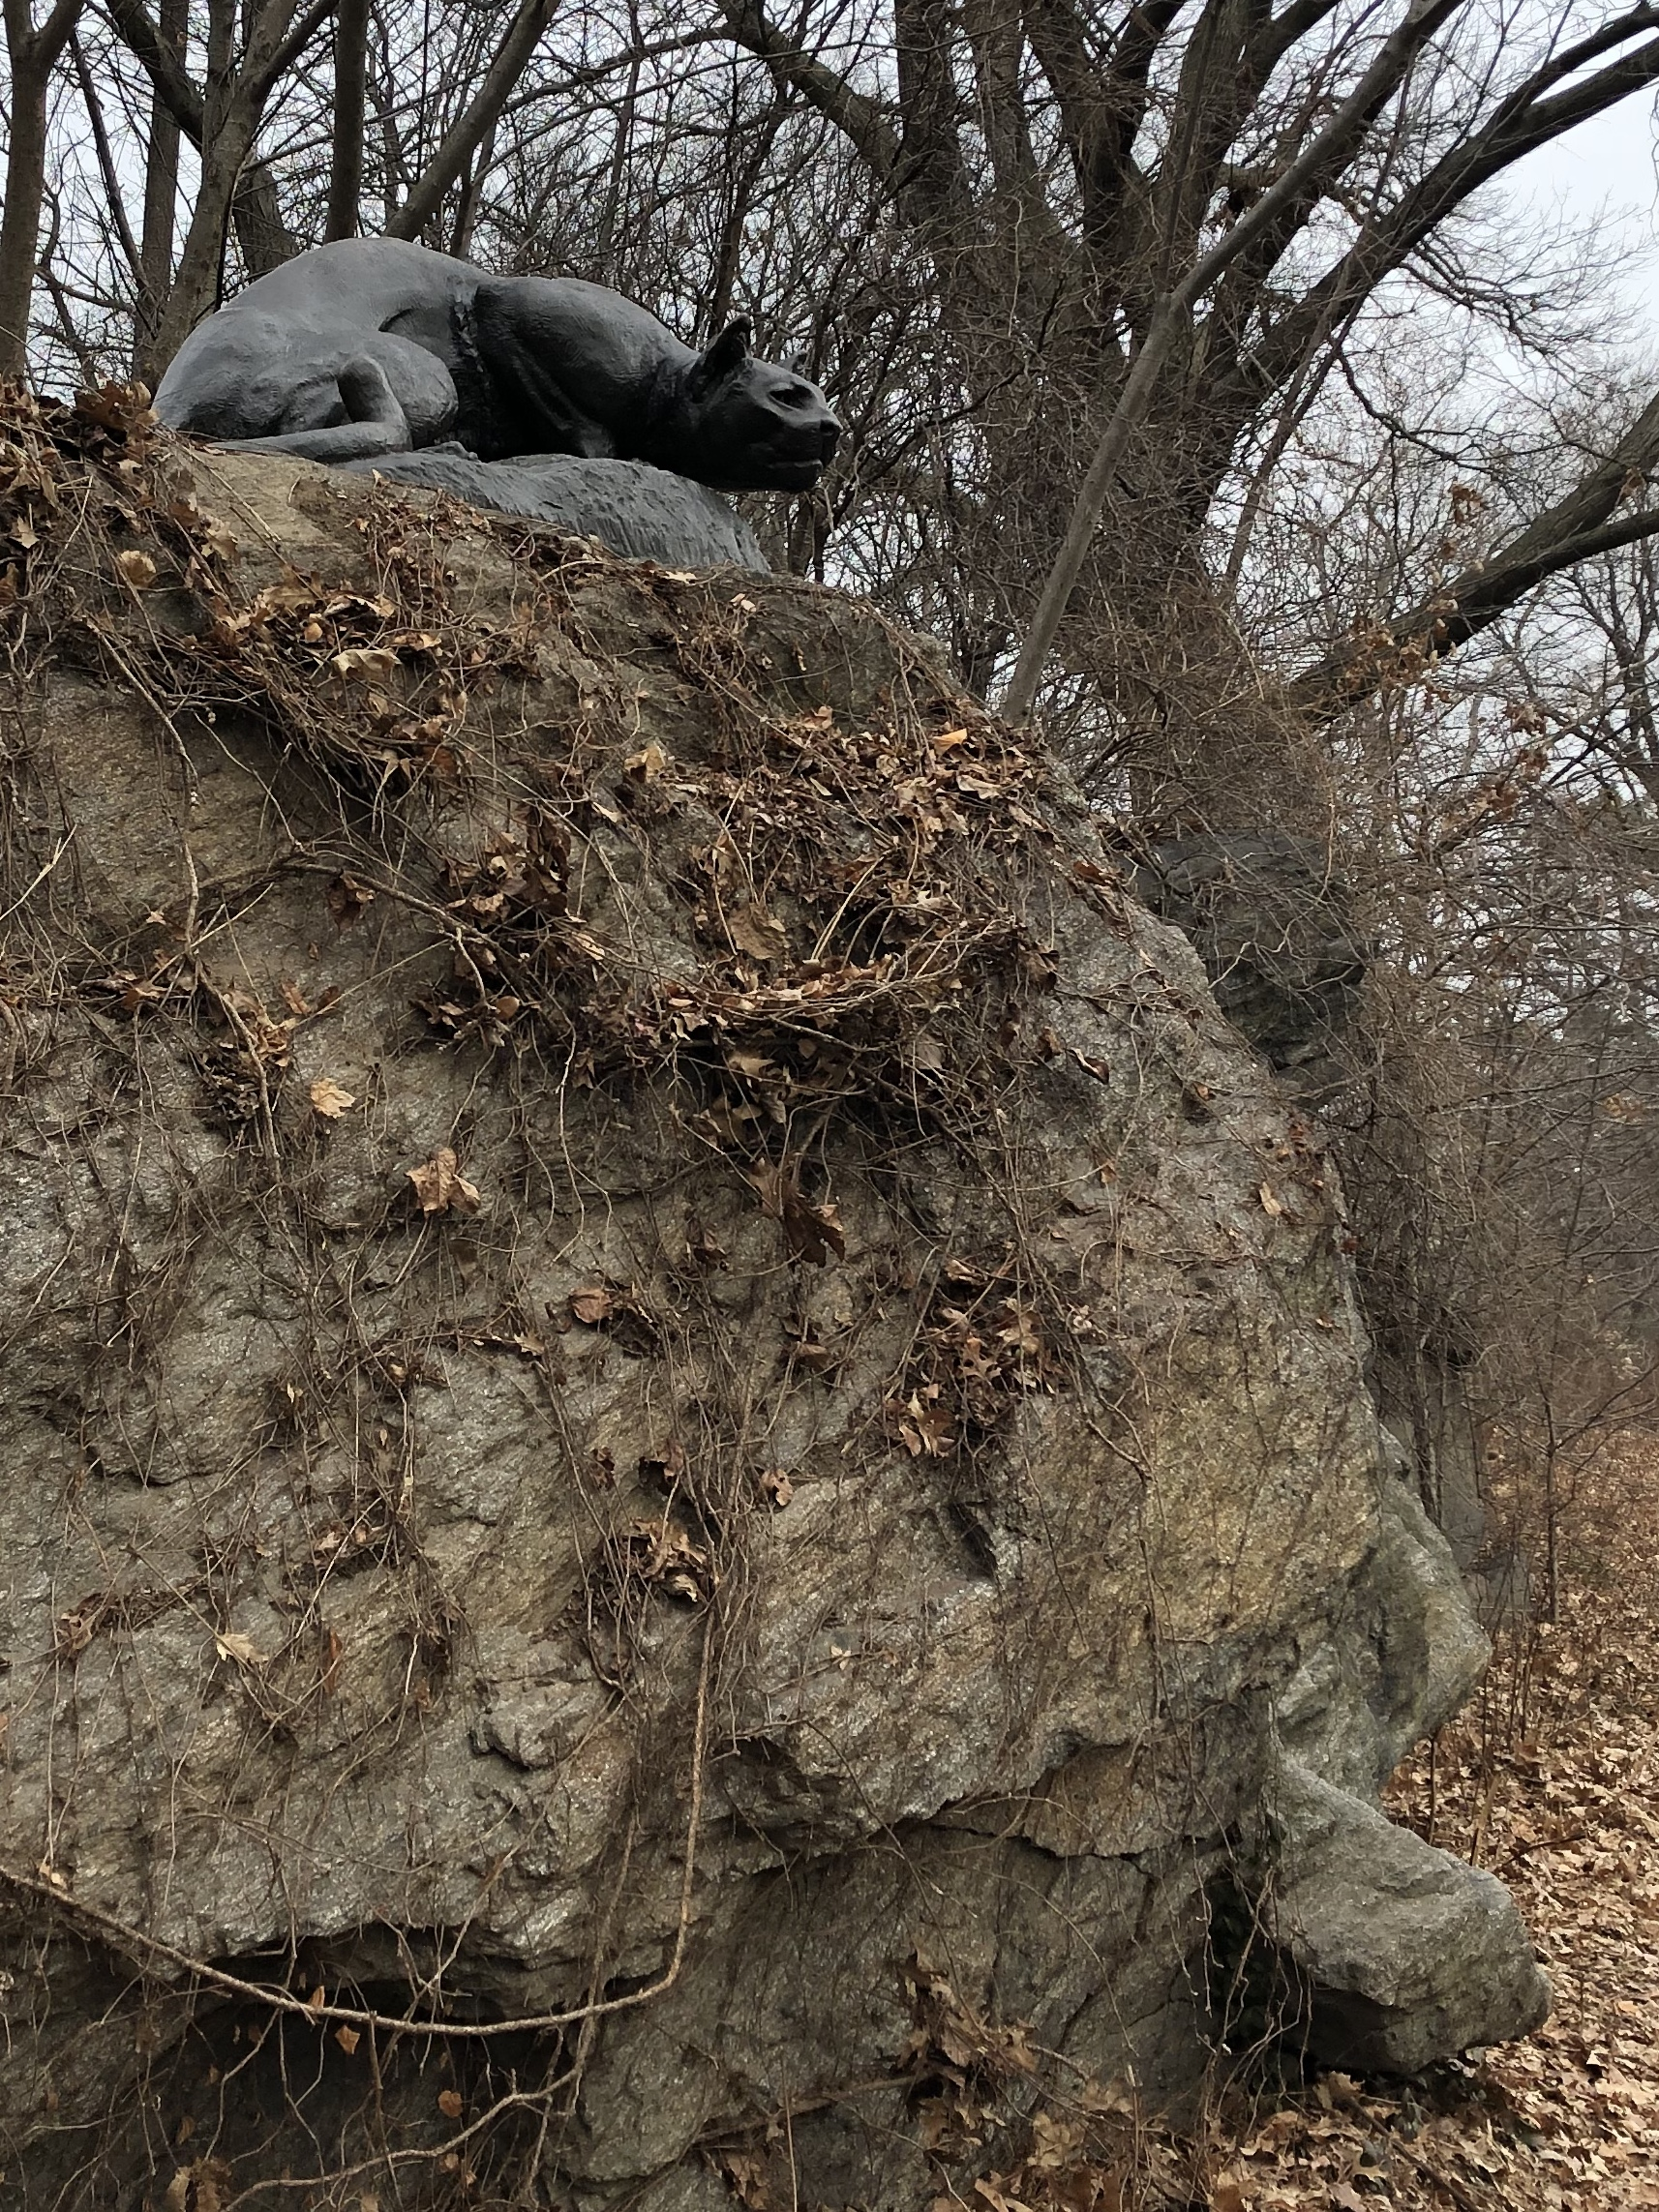 011020-panther-in-Central-Park